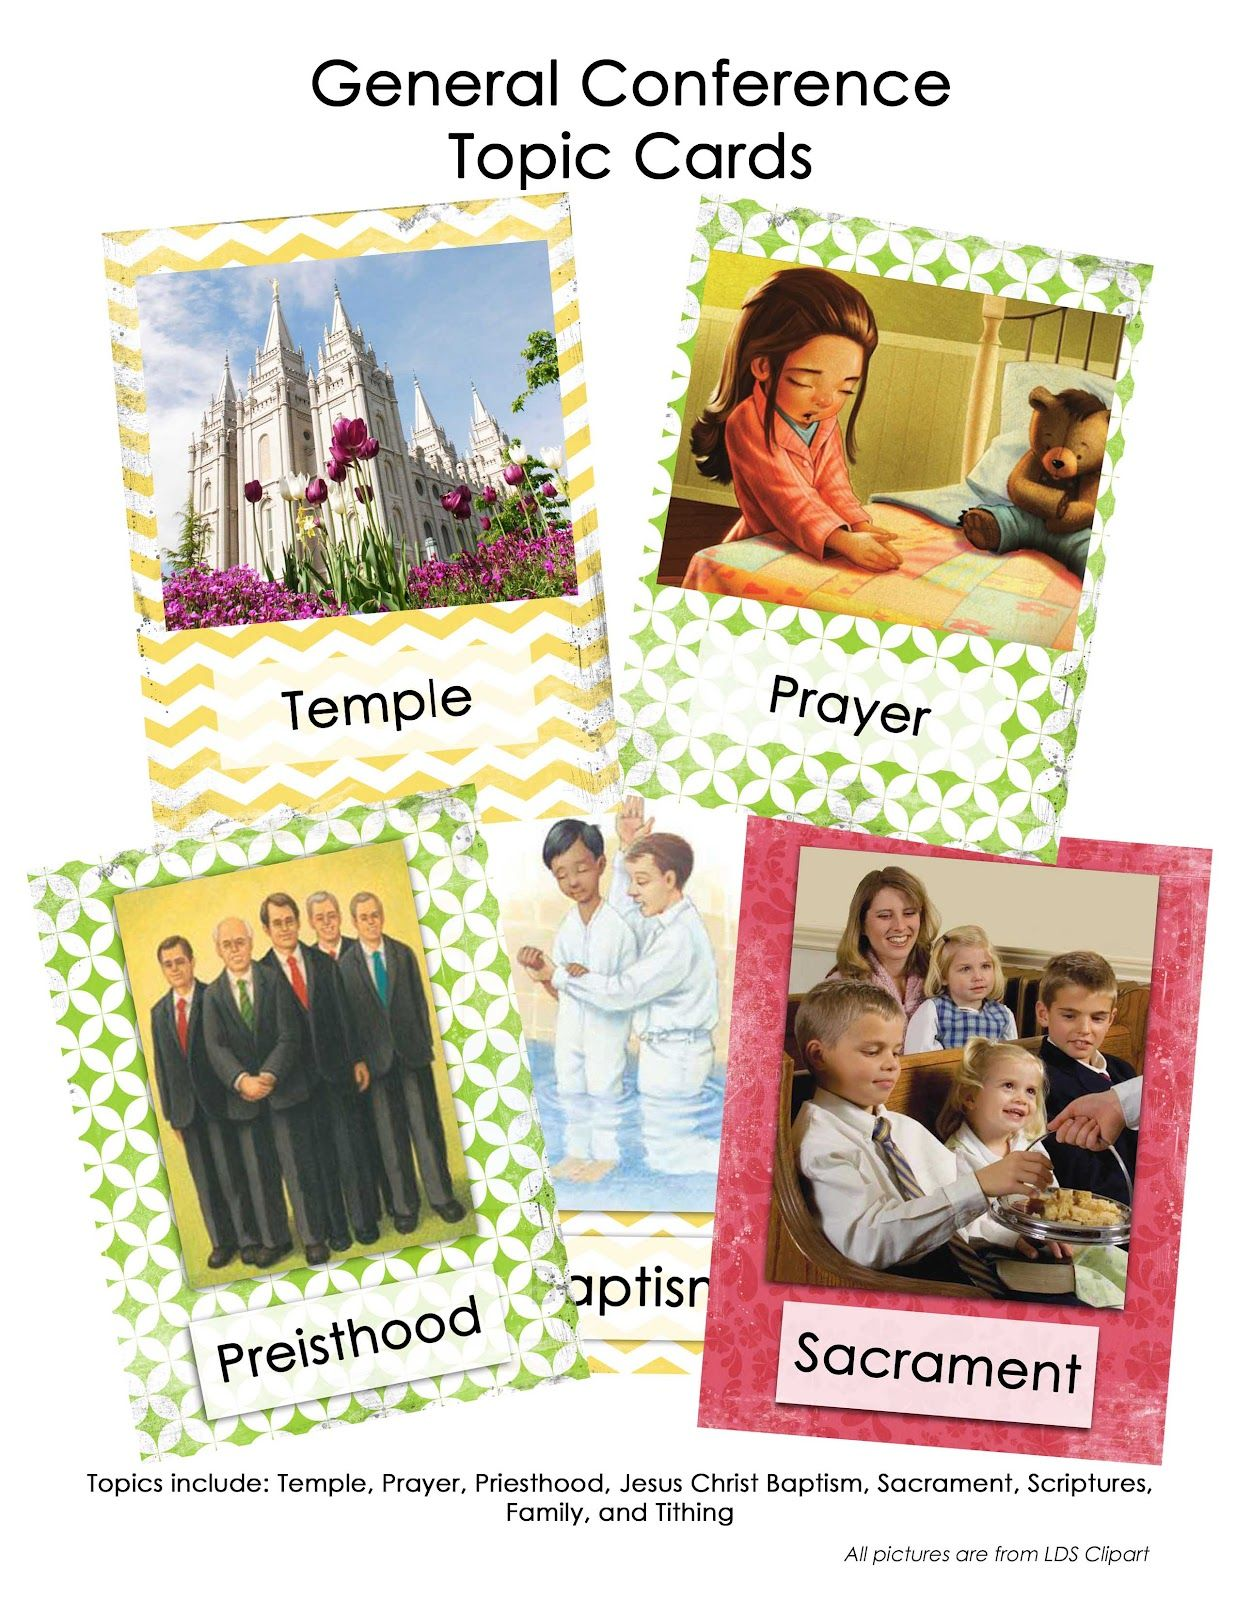 General Conference 'Go Fish' cards. There are topic cards and General Authority cards. **And all the errors are corrected. :)